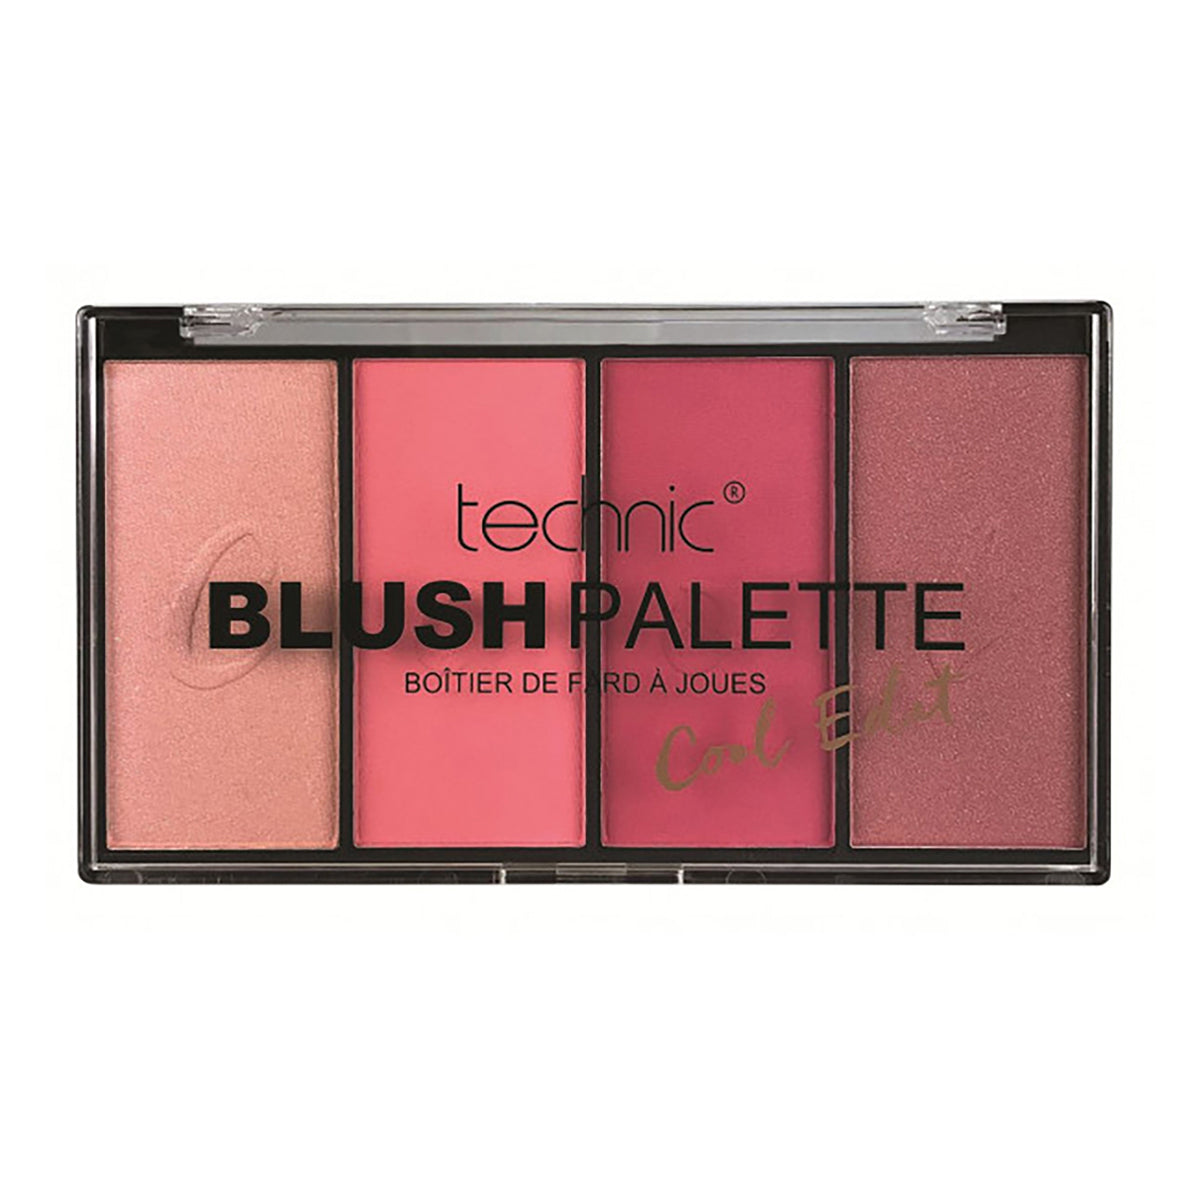 Technic Blush Palette